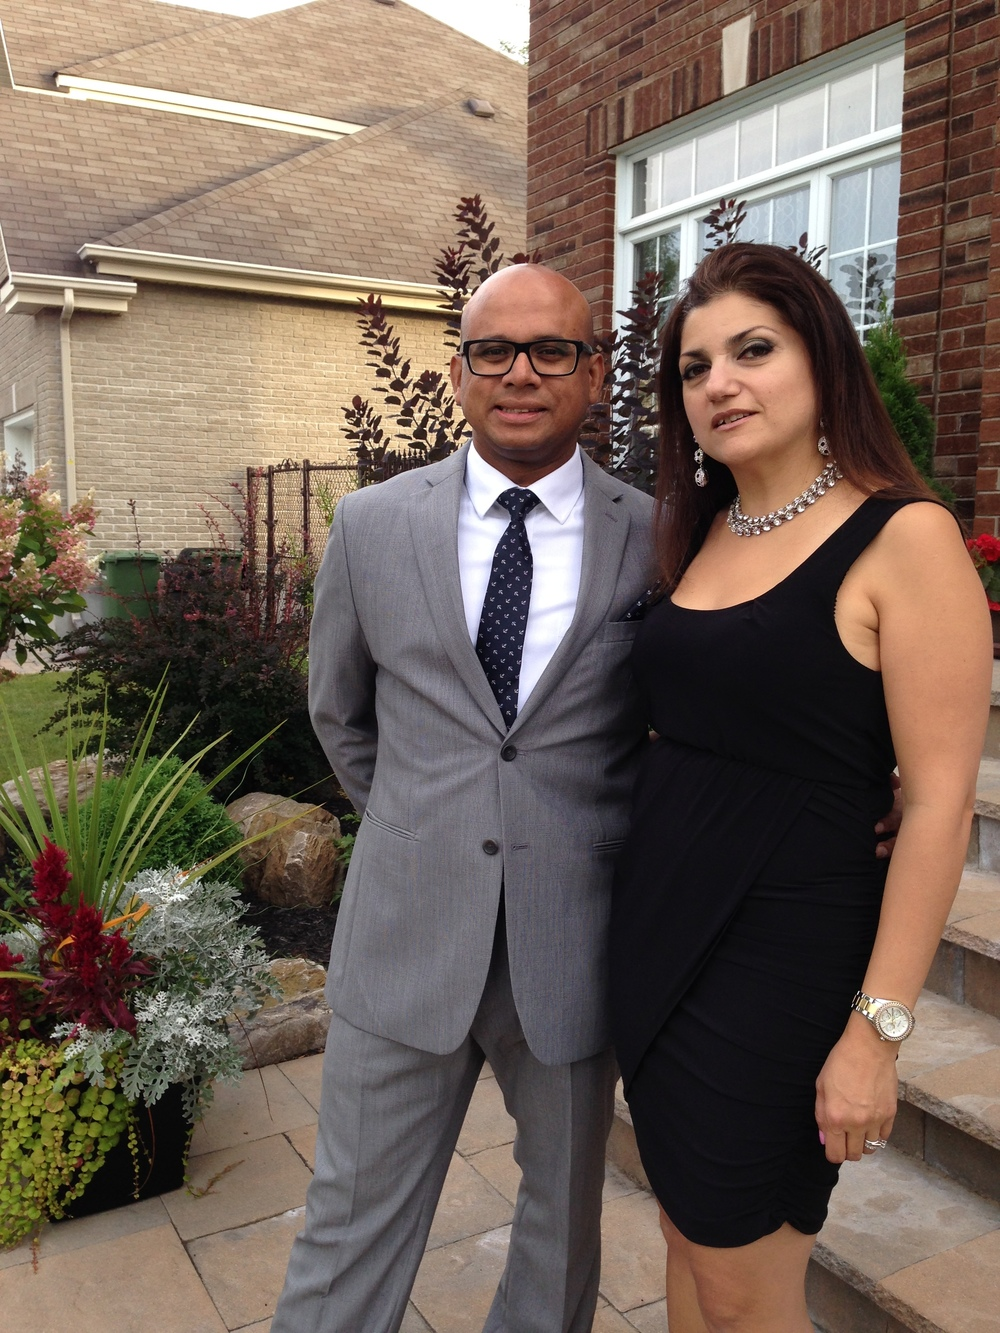 August 2014 on my way to my cousin's wedding with my husband Ashiq. I was 4 months into the Weight Watchers program and had already lost 8 lbs. .